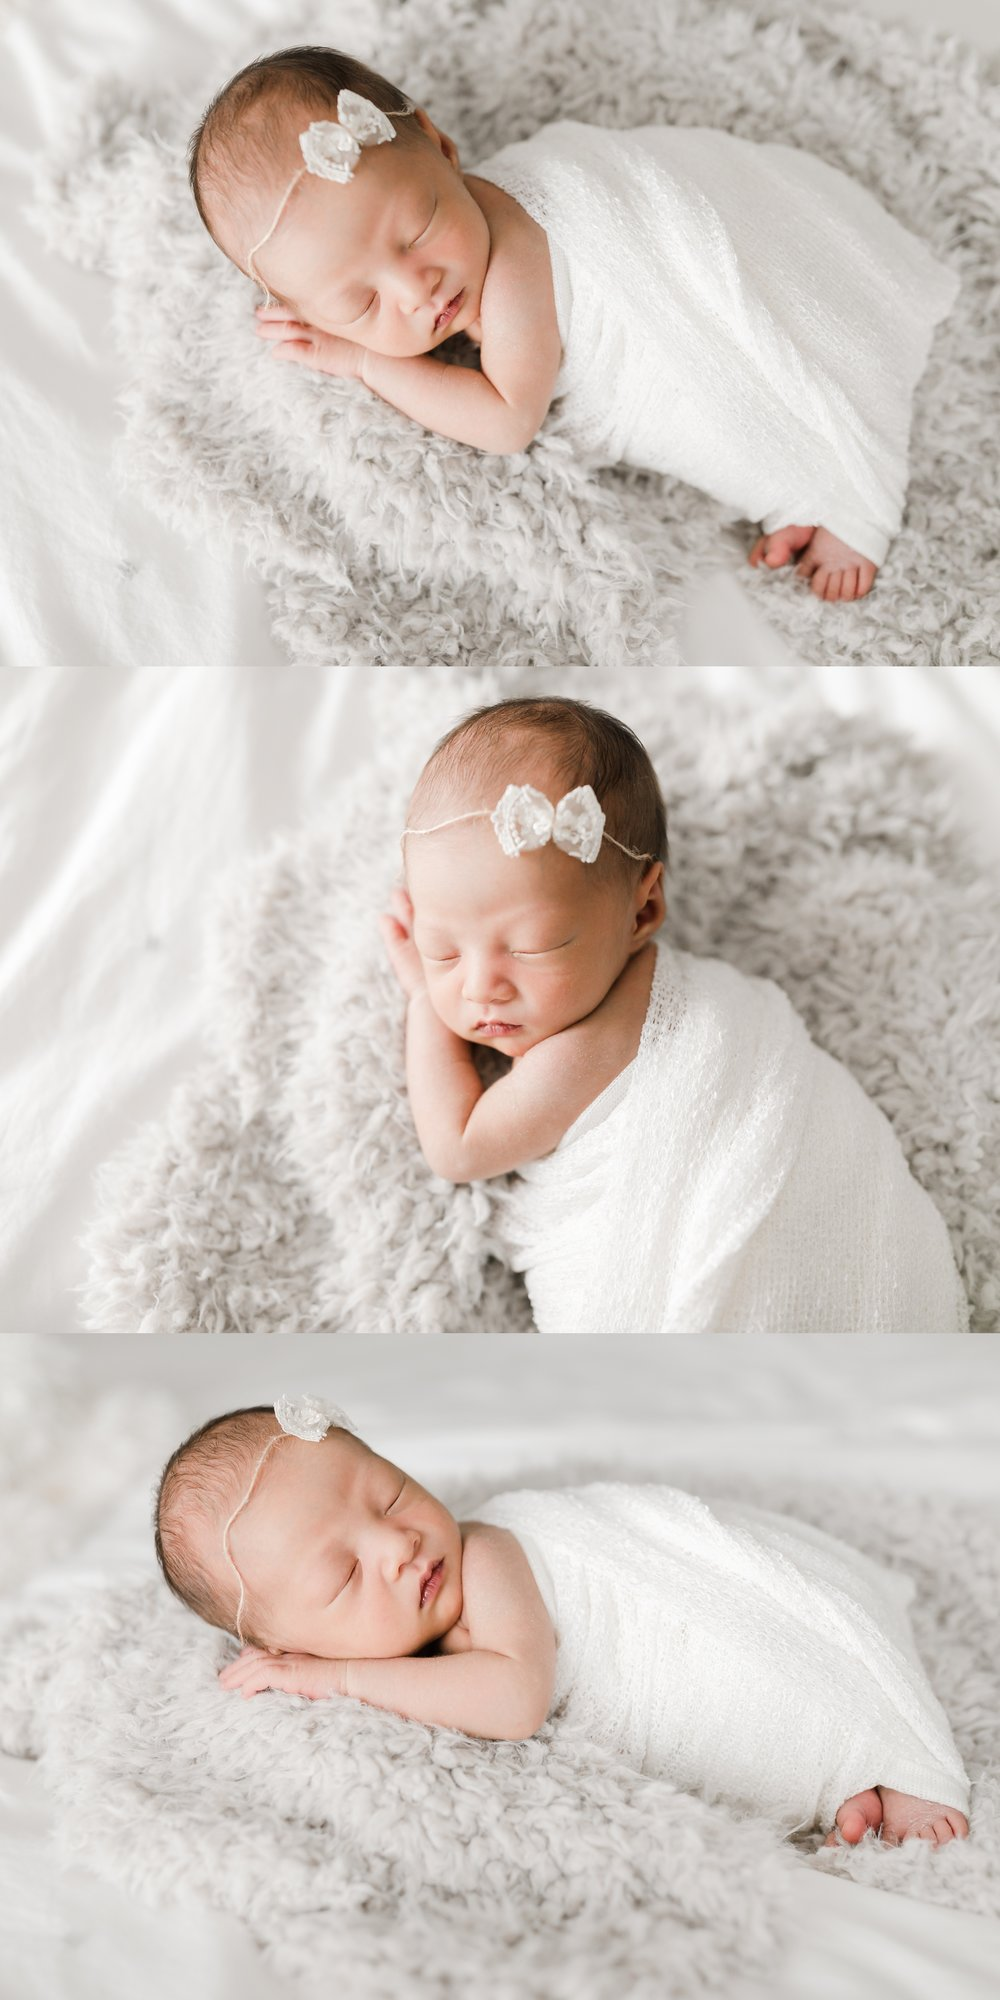 chicago-newborn-family-lifestyle-photographer-jenny-grimm-photography_0000.jpg